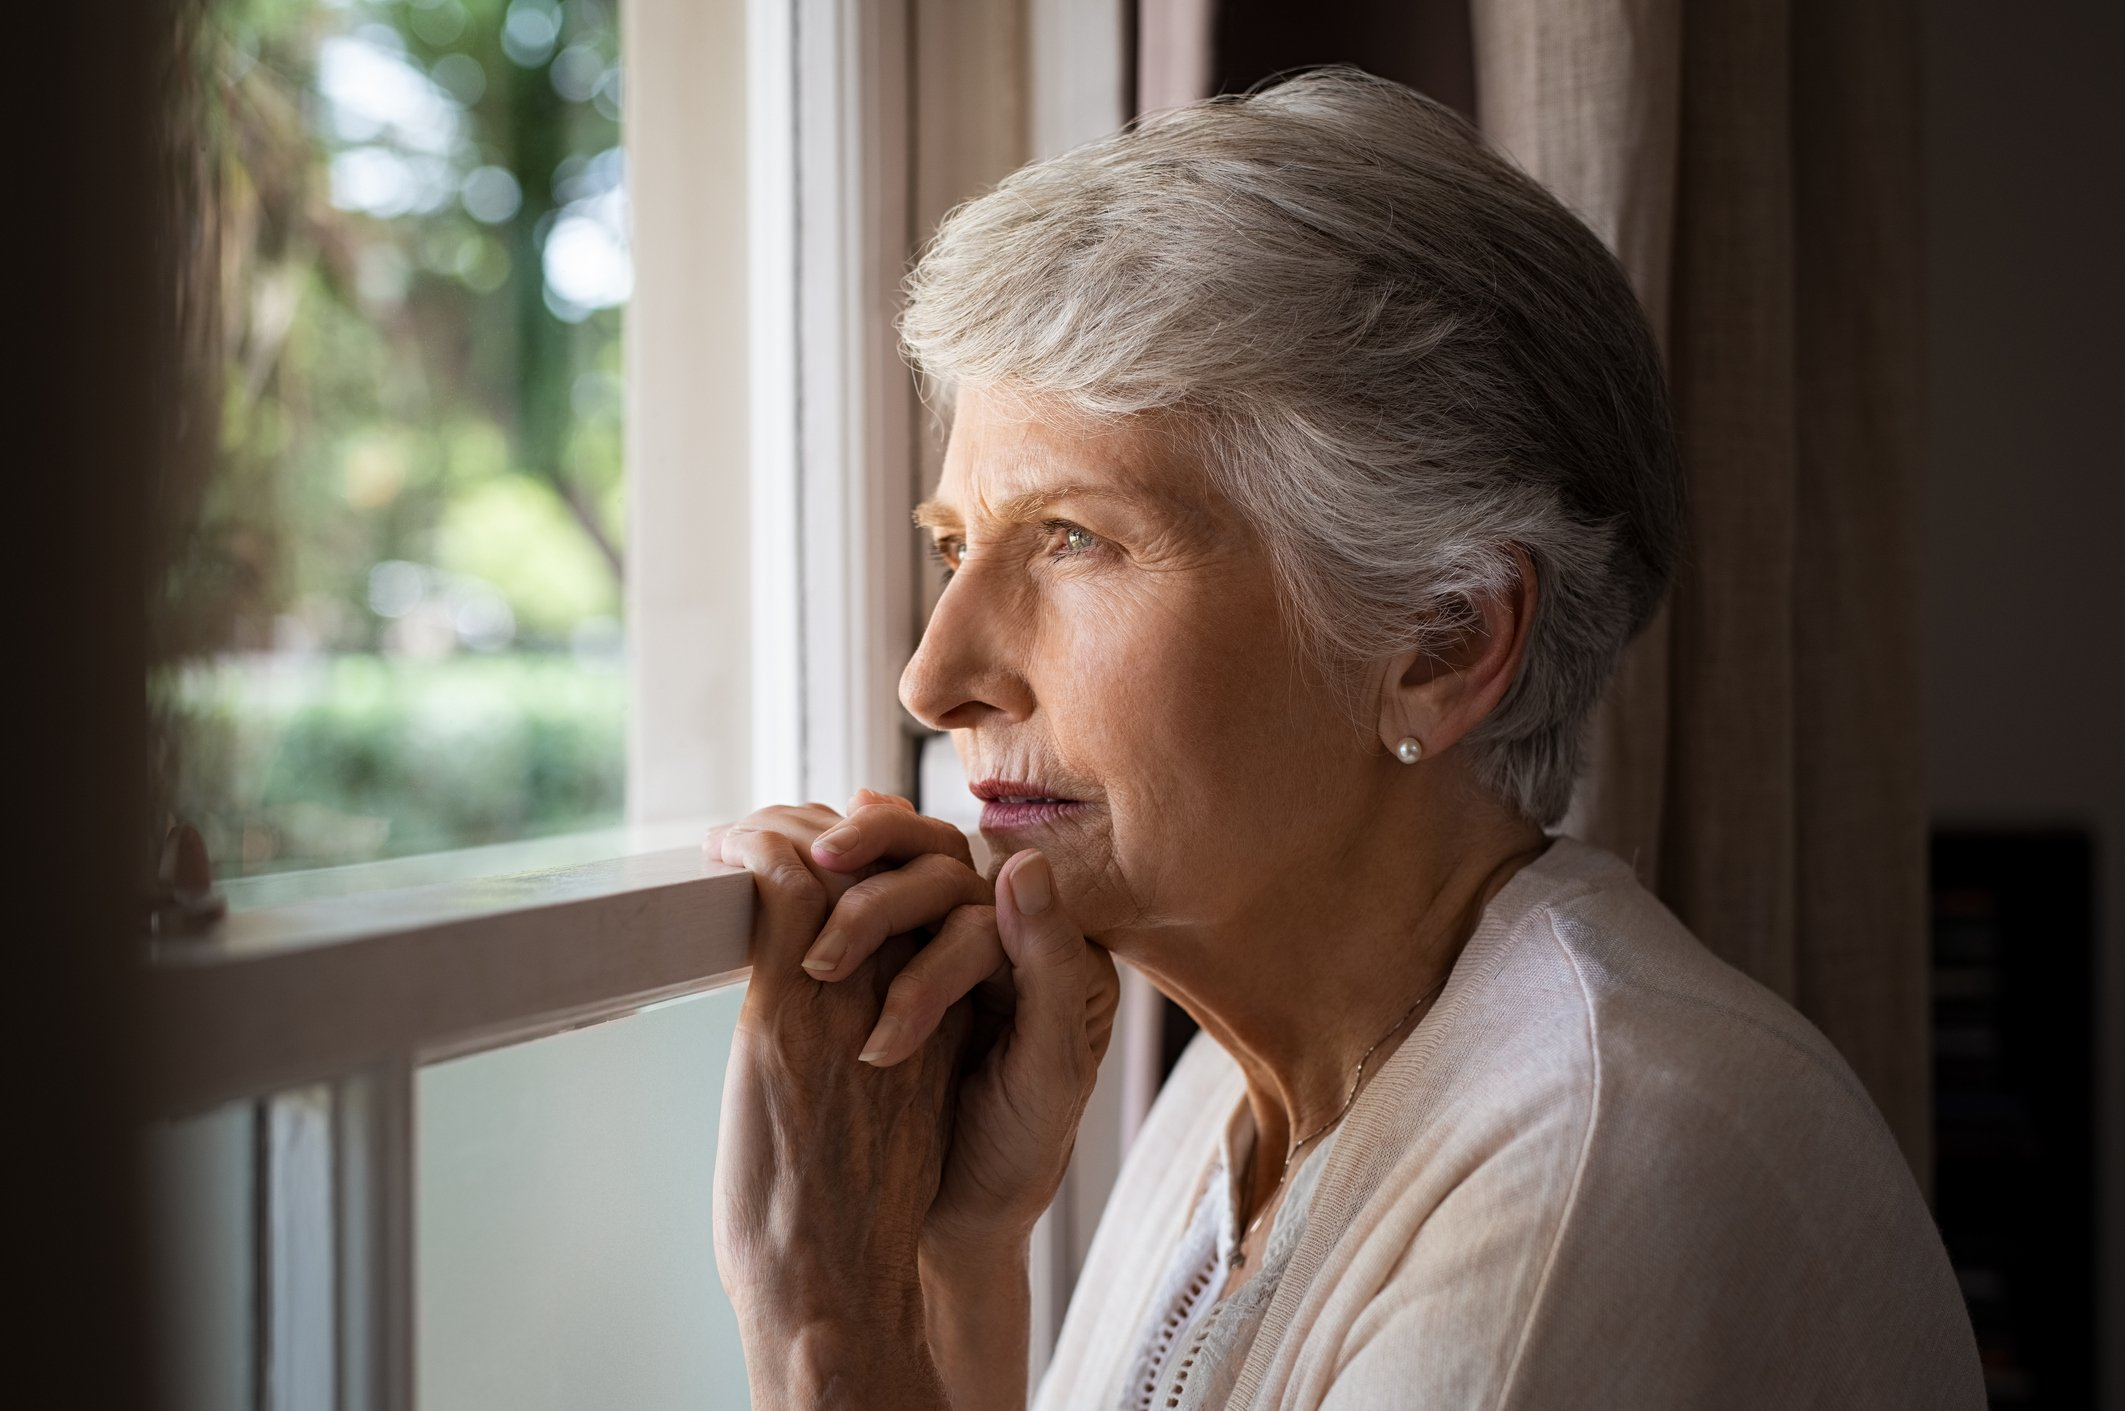 Signs Your Loved One Needs Additional Help or Support at Home